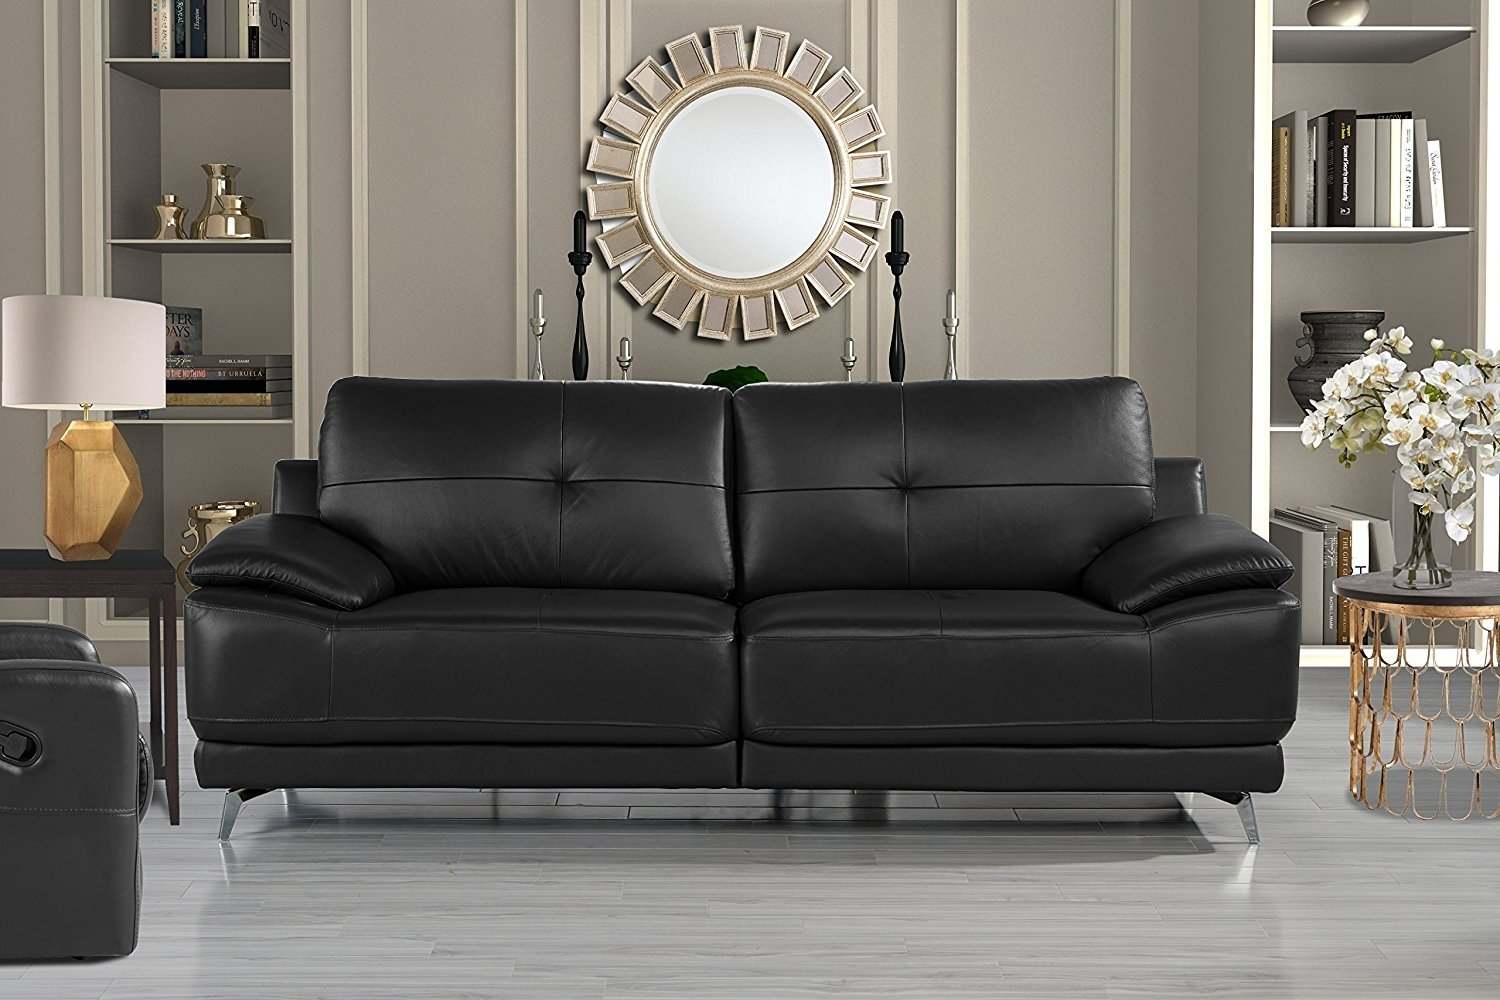 Modern Contemporary Living Room Leather Sofa, Classic Couch (Black ...